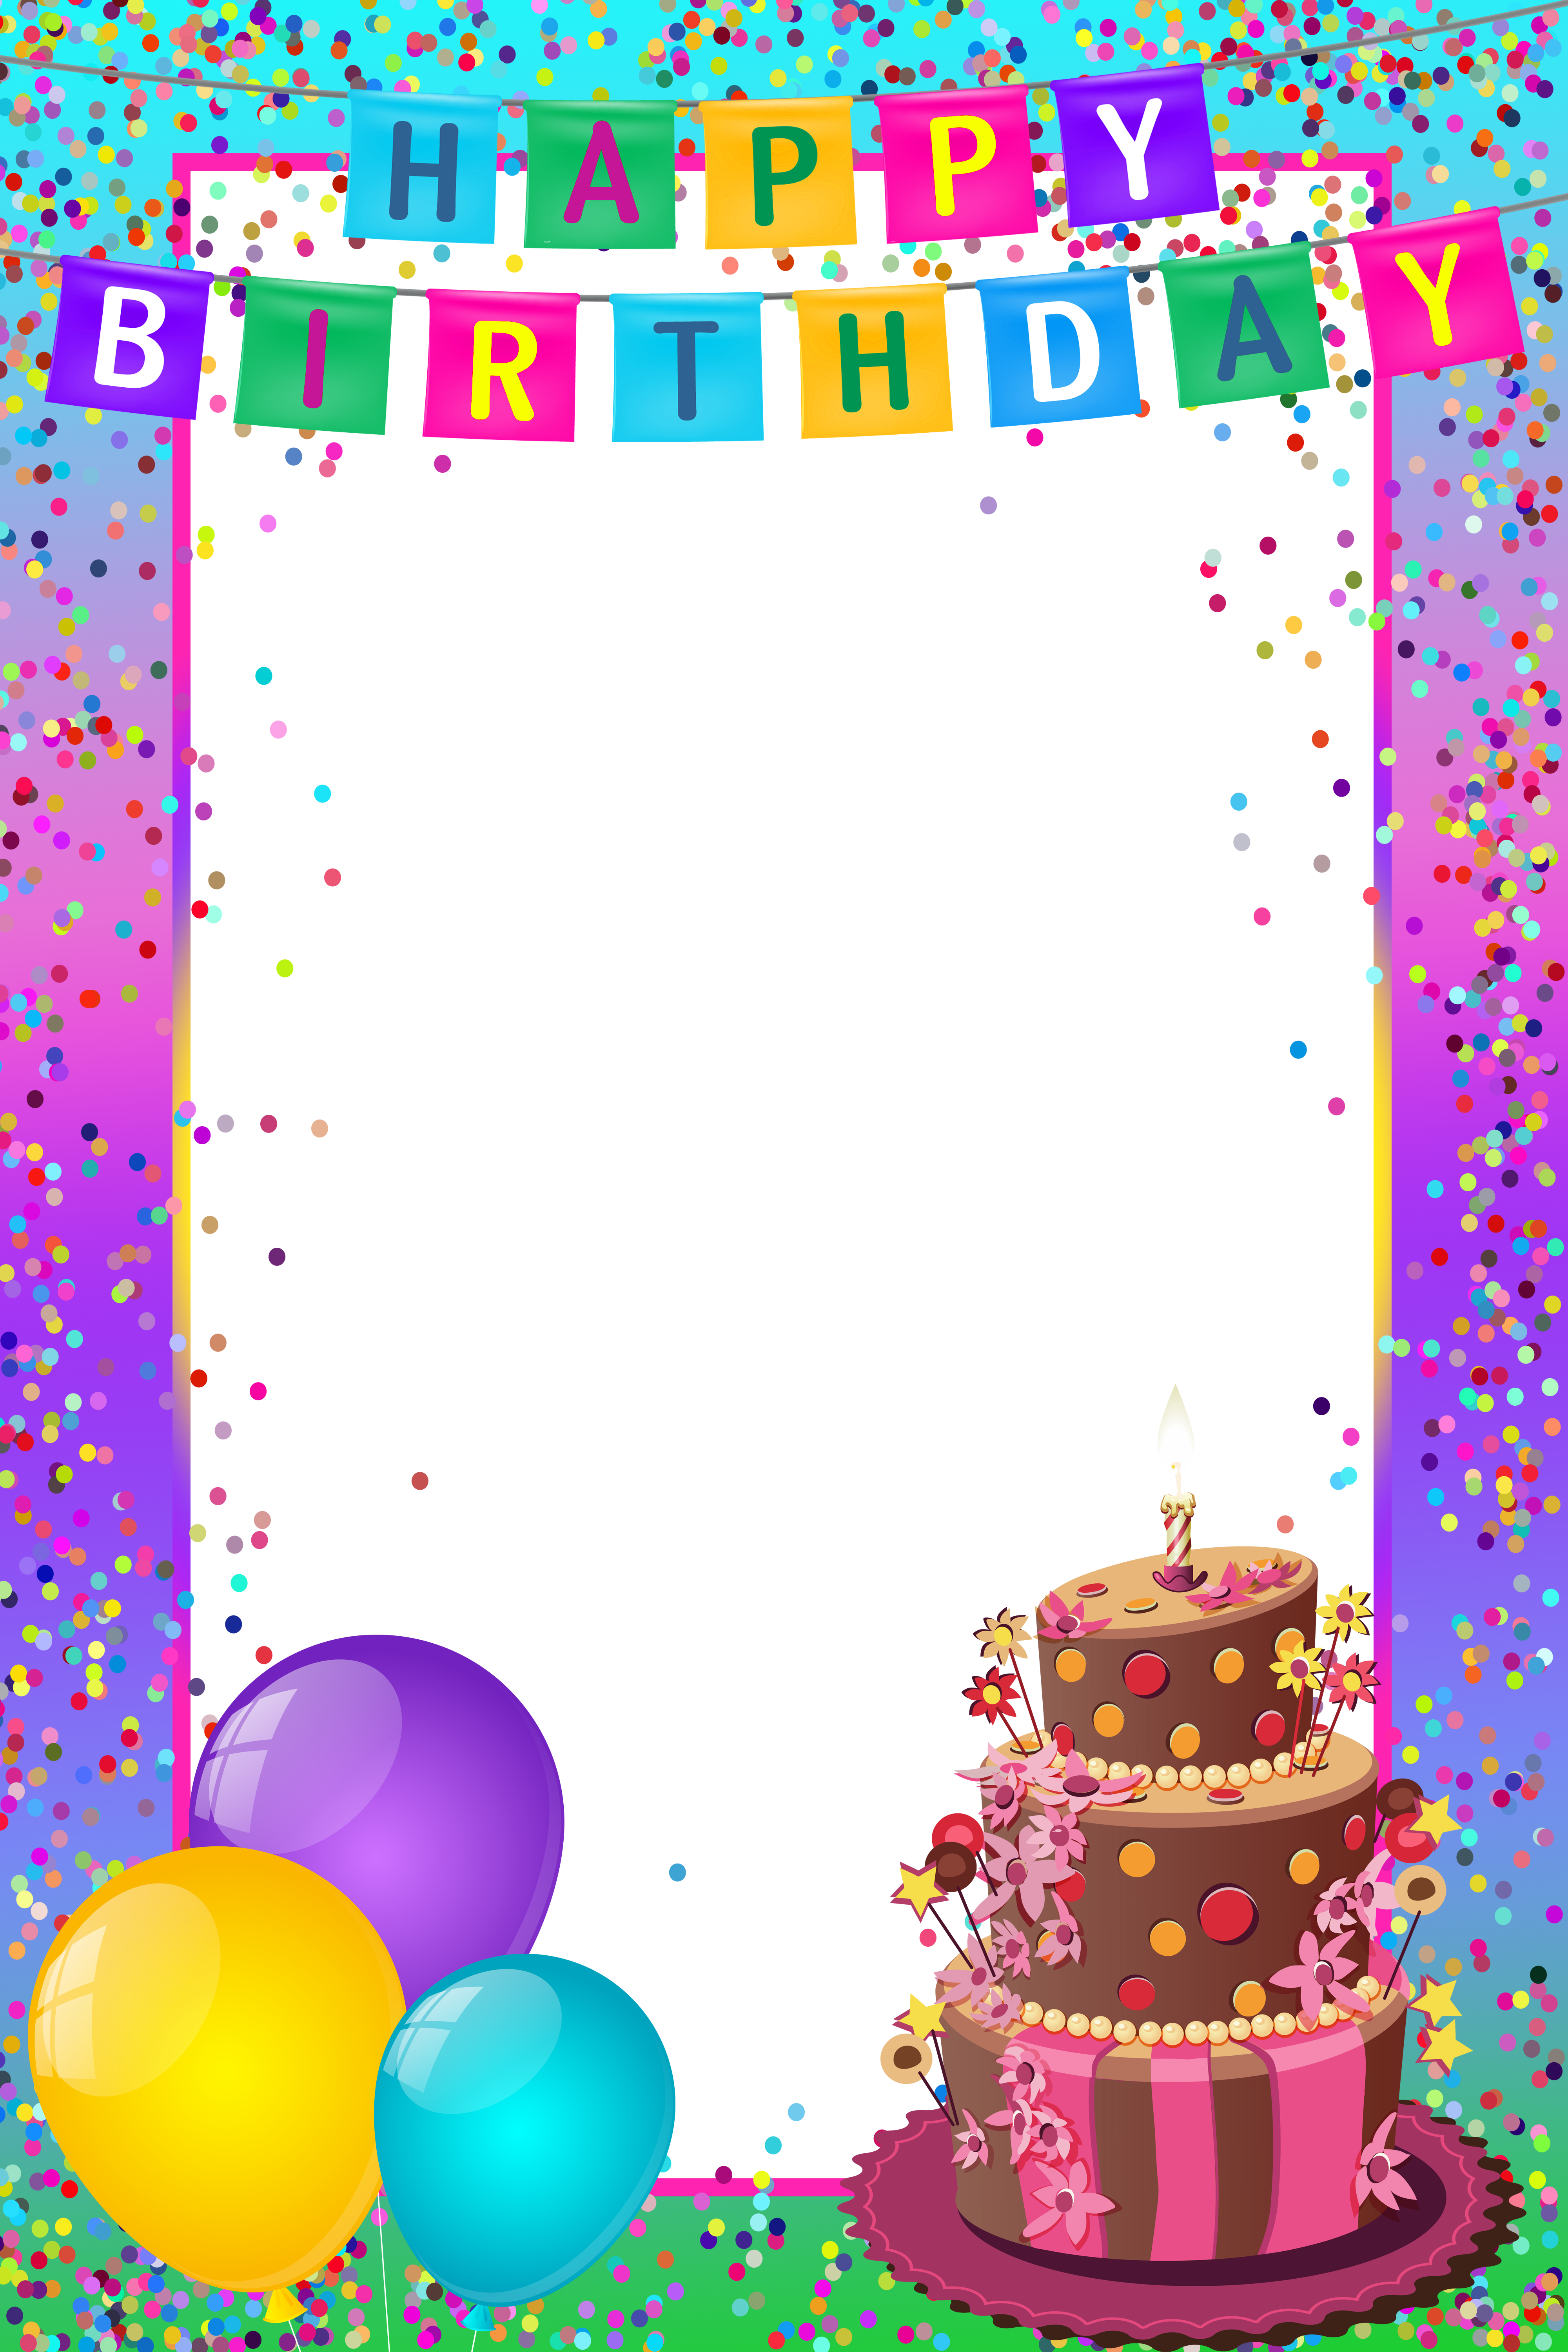 Png transparent multicolor gallery. Clipart frame happy birthday